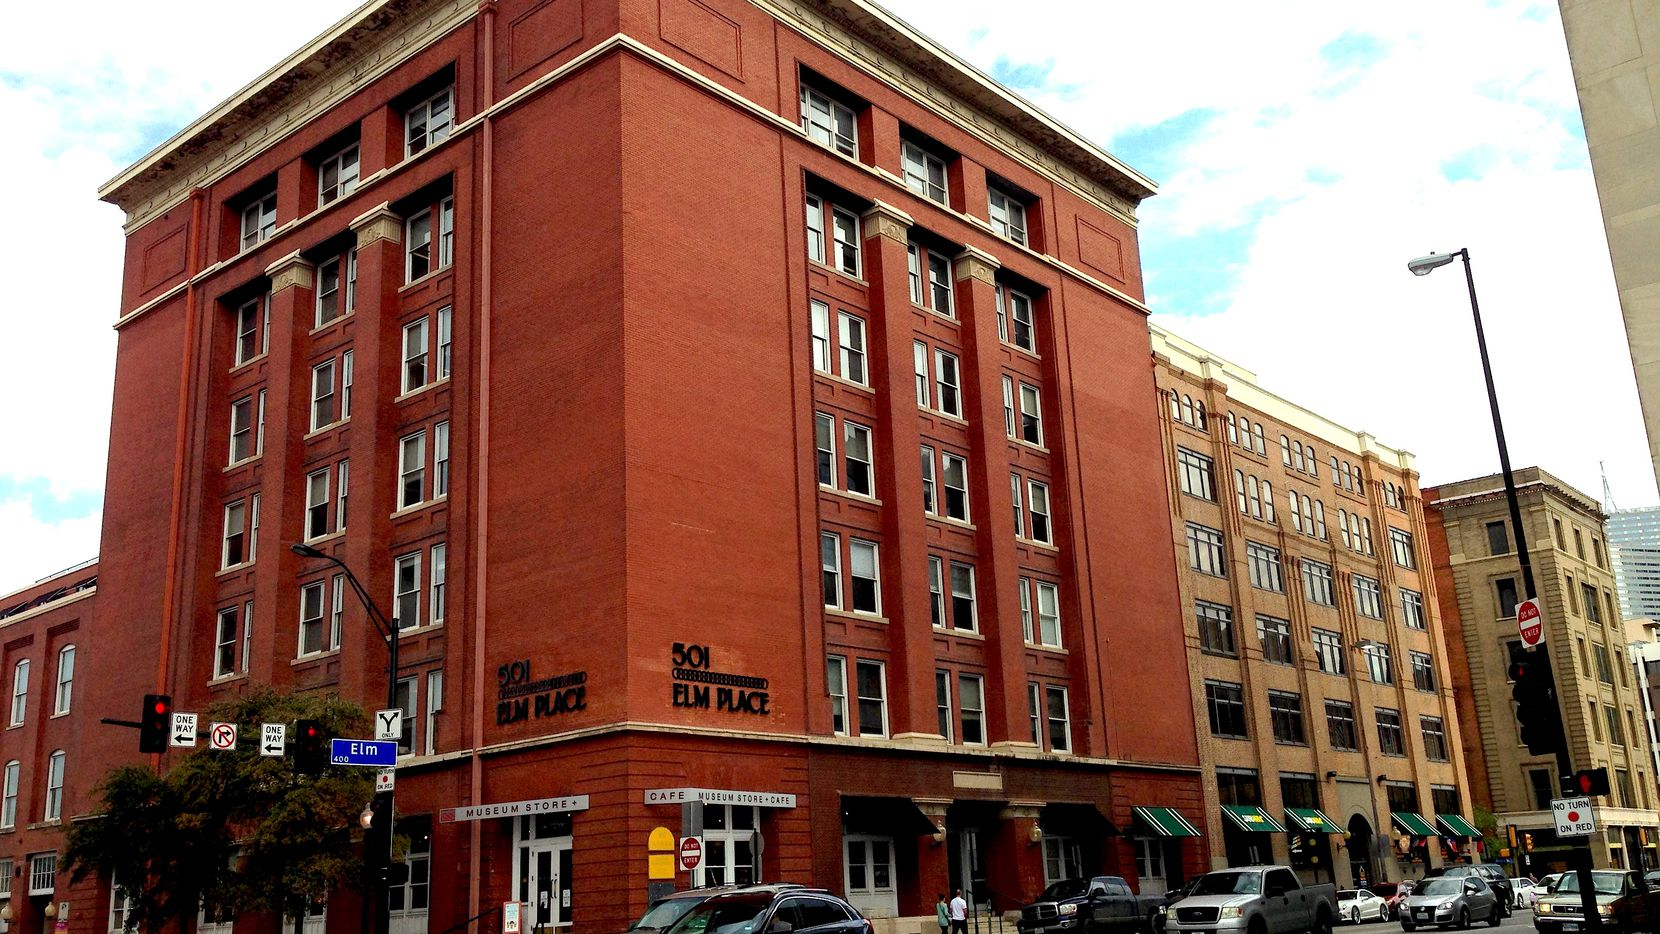 Built in 1903, the 501 Elm building once housed the John Deere Plow Co.